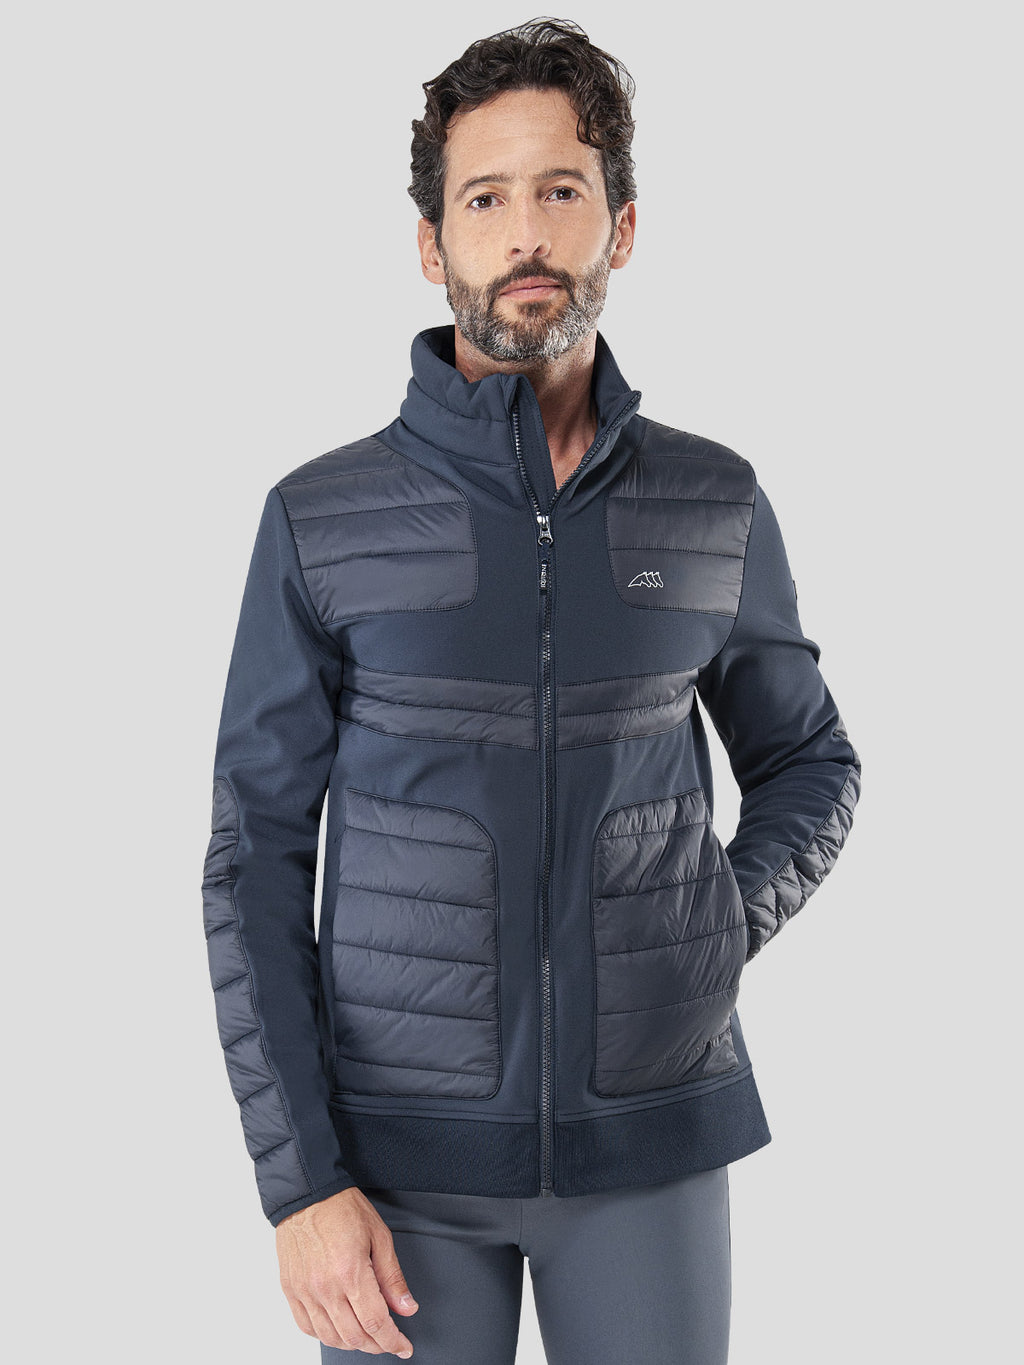 Clover - Men's Padded Soft Shell Jacket